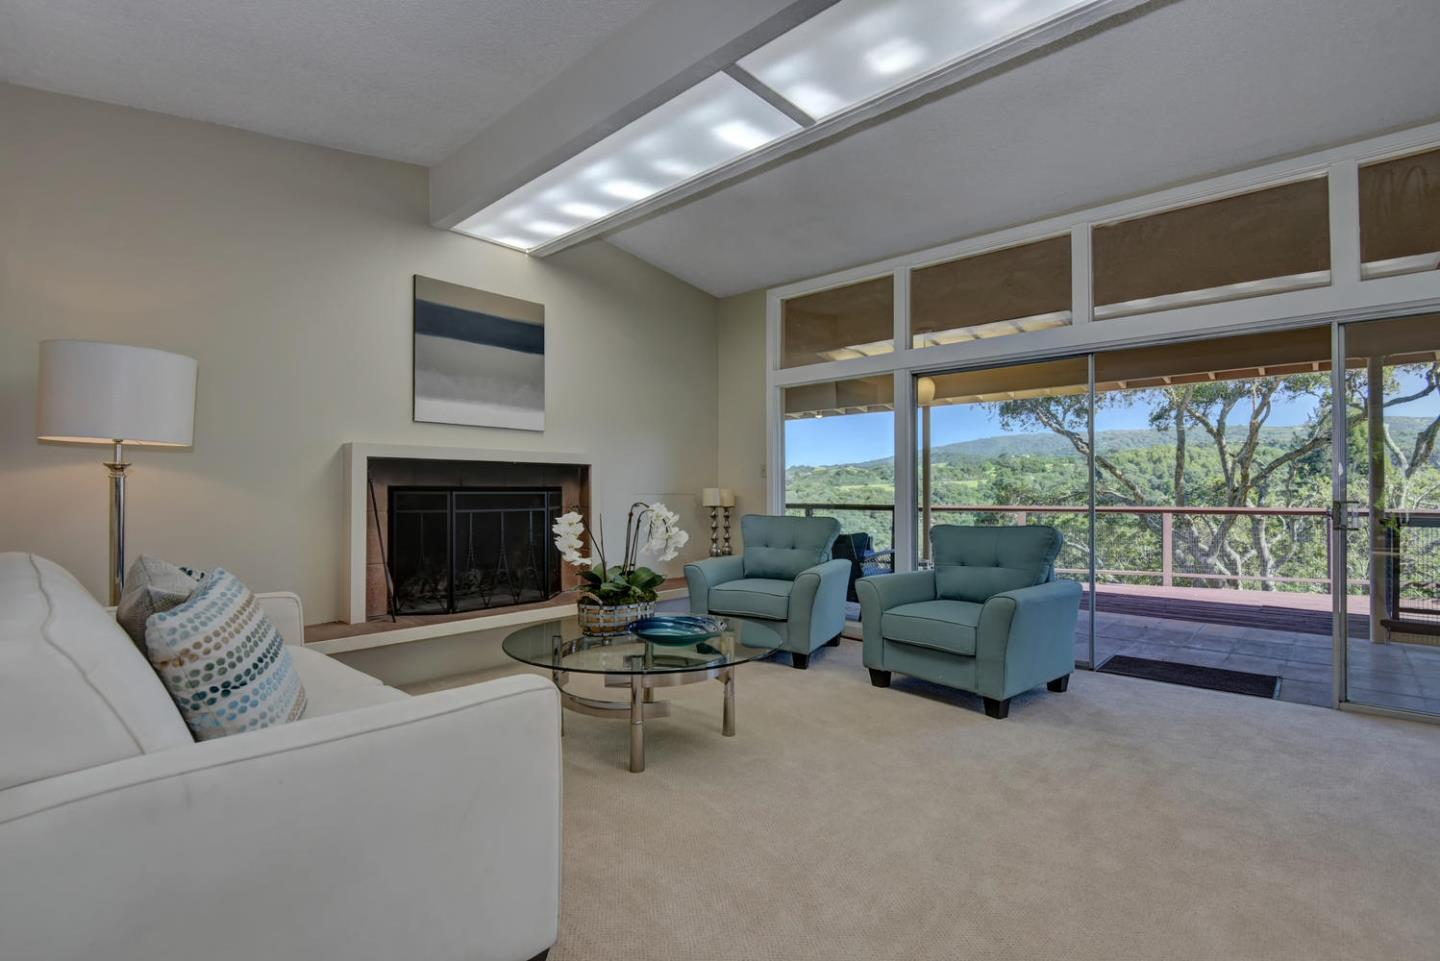 Additional photo for property listing at 180 Bear Gulch Drive  Portola Valley, California 94028 United States